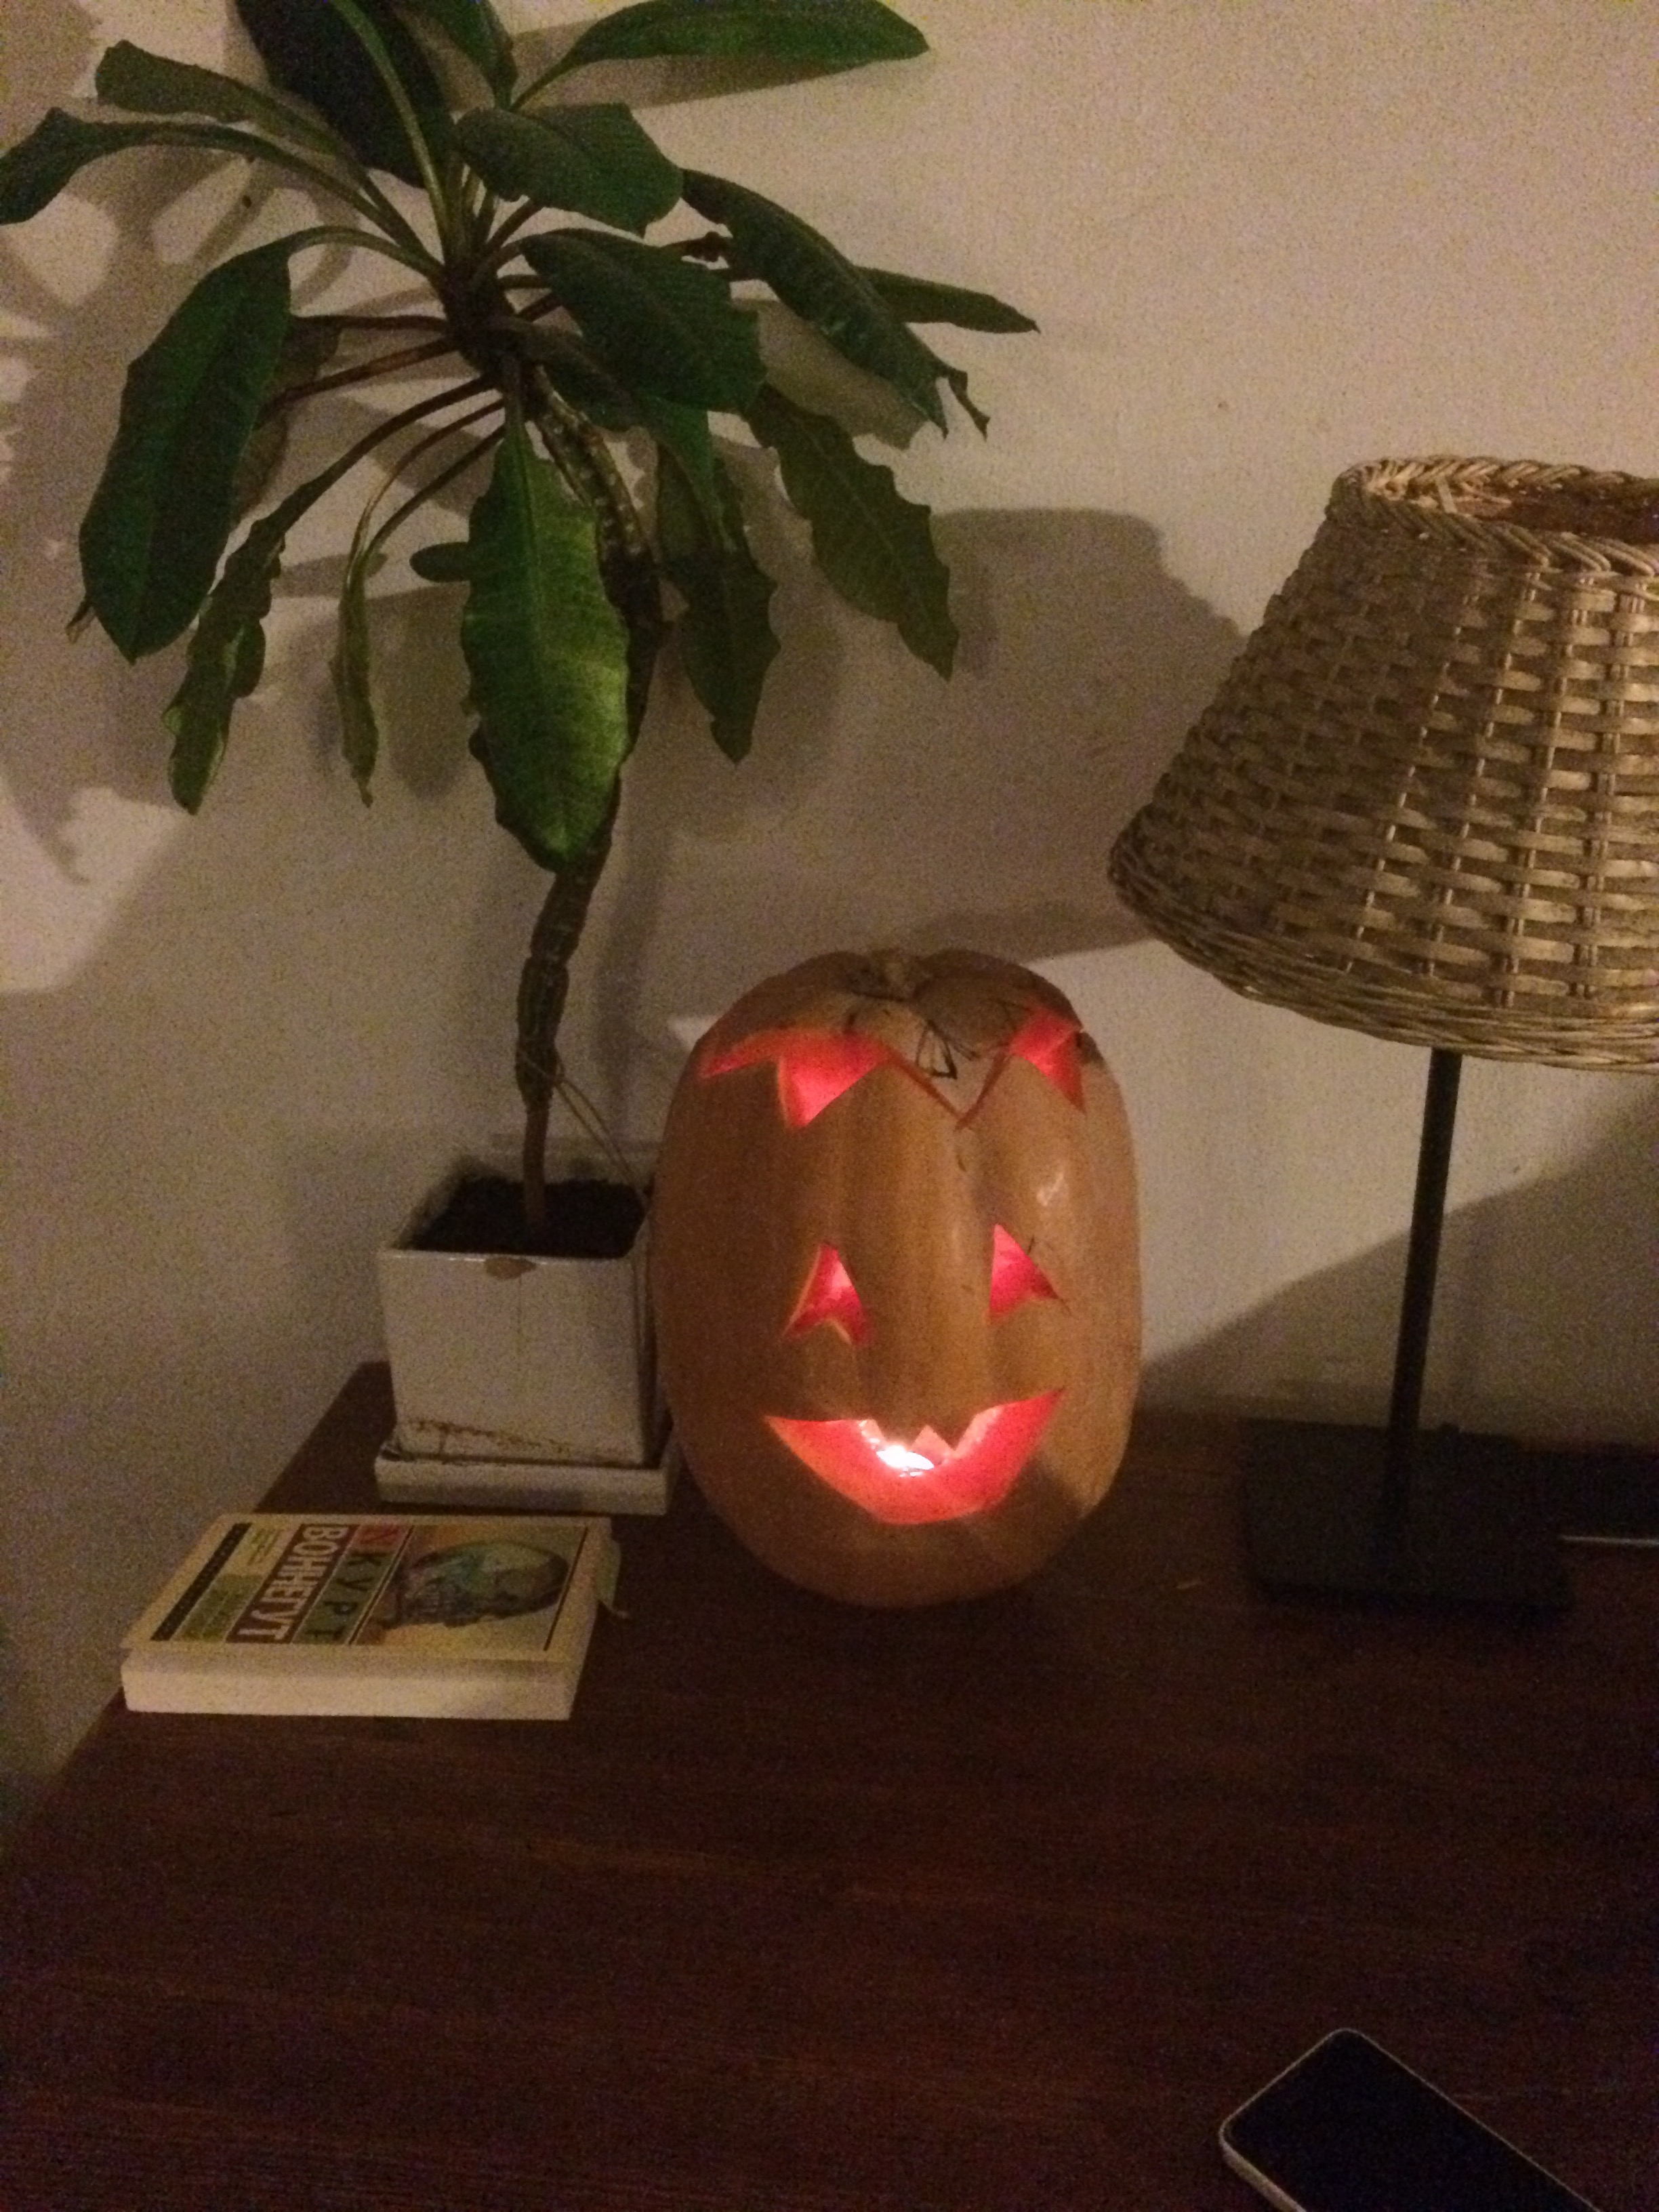 My pumpkin, lit up!